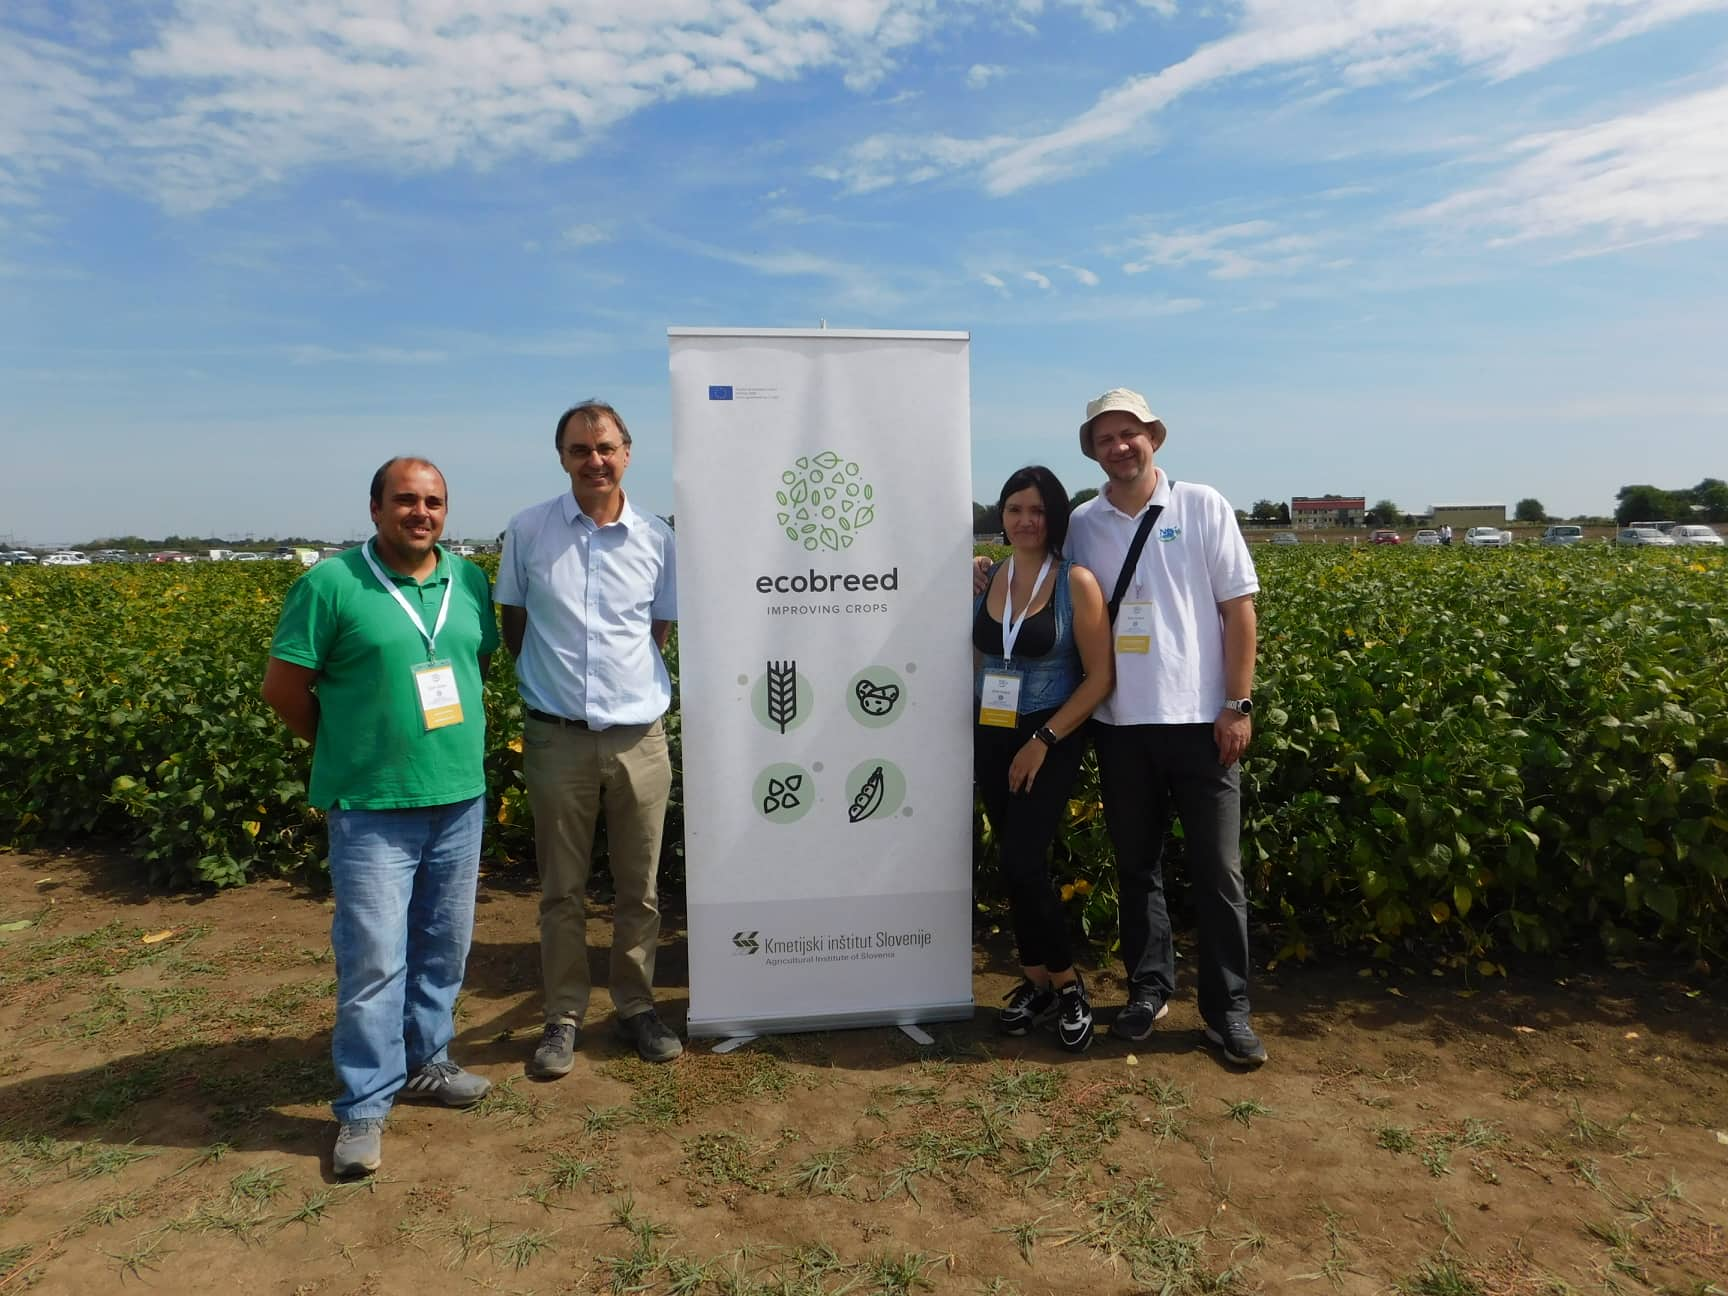 ECOBREED at the Autumn Field Days in Serbia